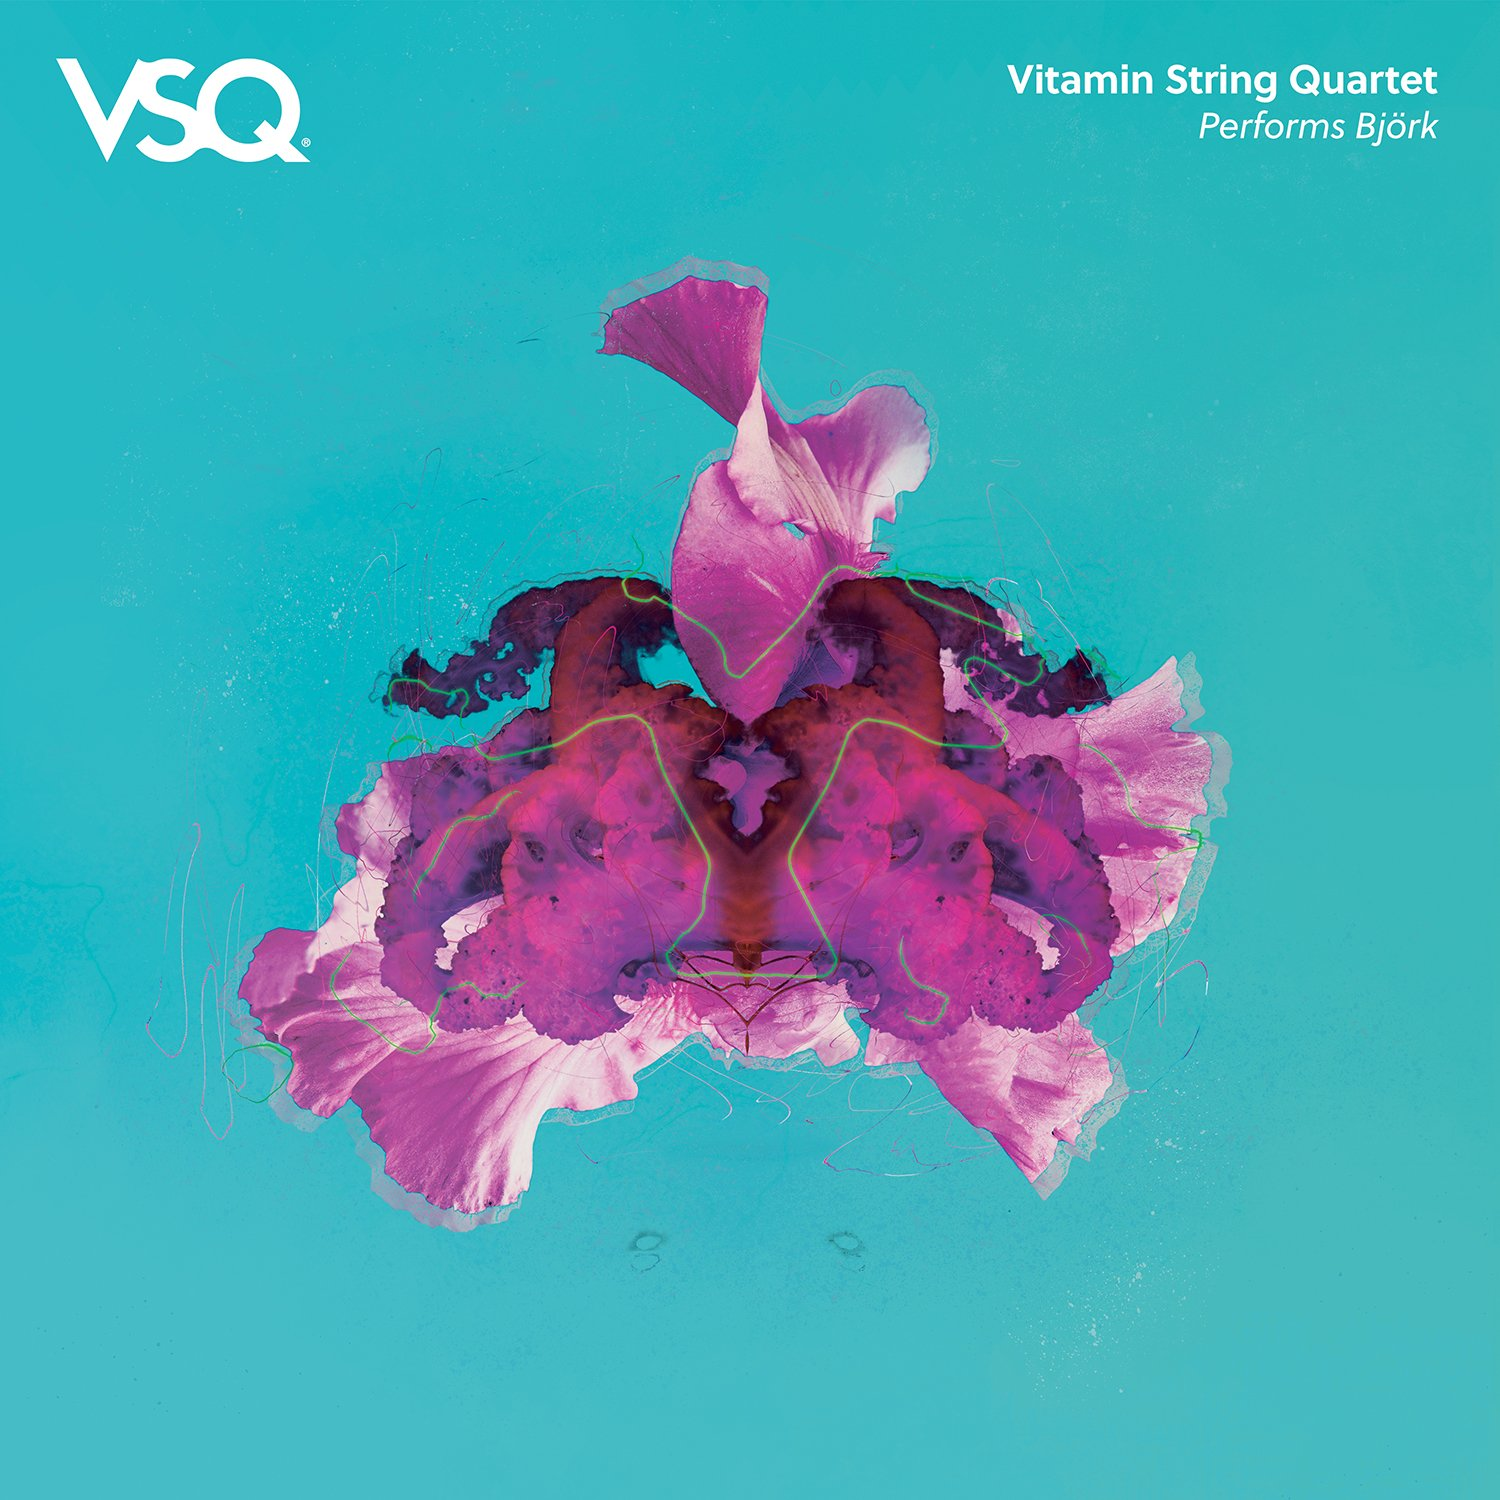 Vitamin String Quartet performs Bjork